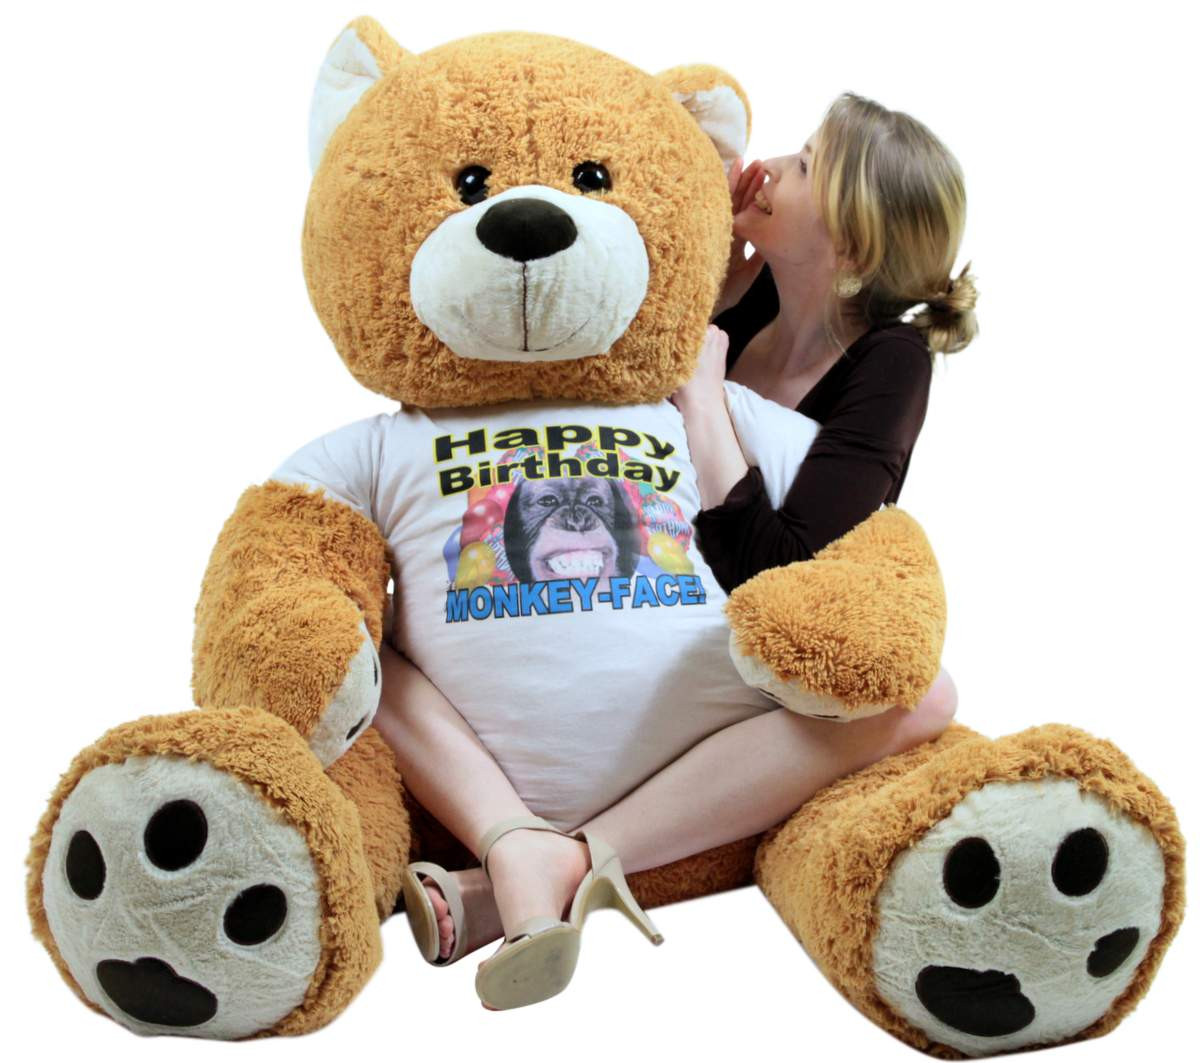 giant happy birthday teddy bear 55 inches honey brown color wears